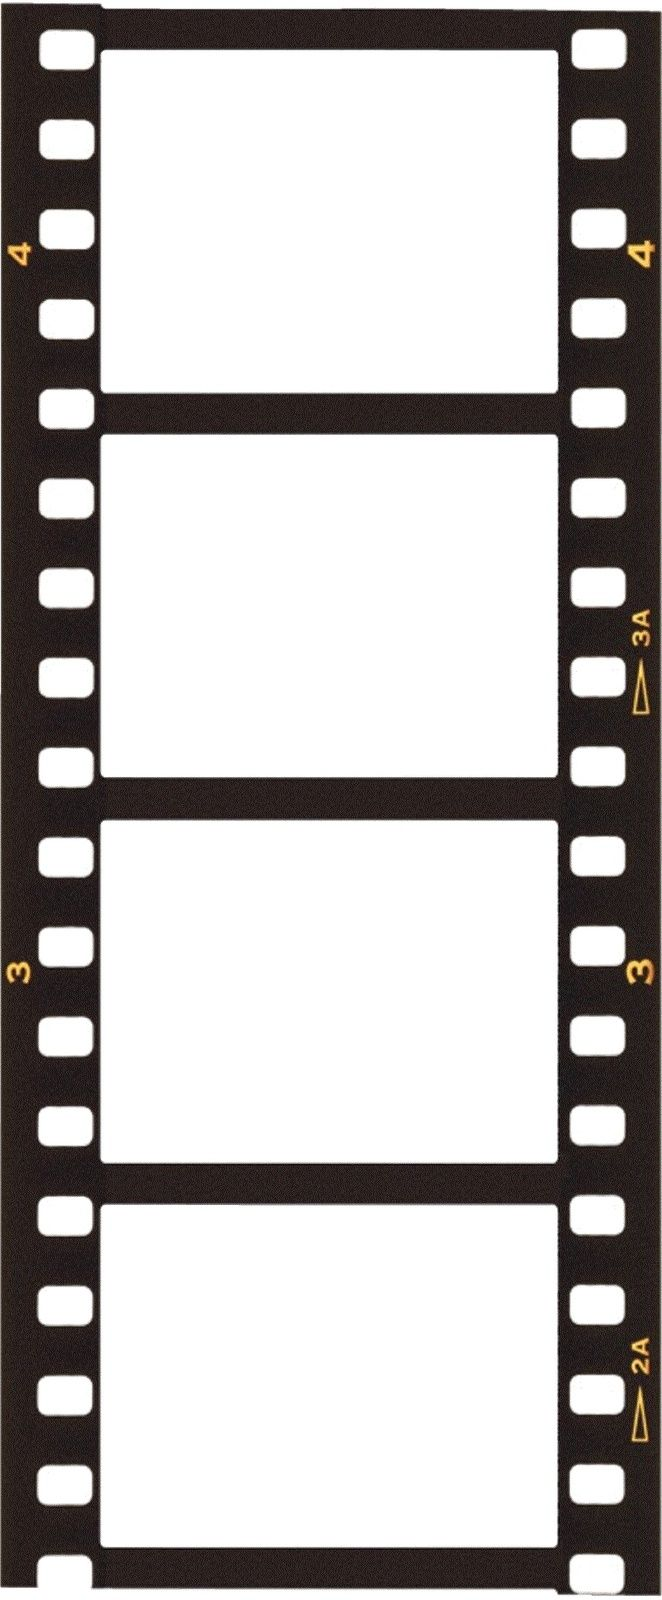 Film clipart photo booth. Free templates search results